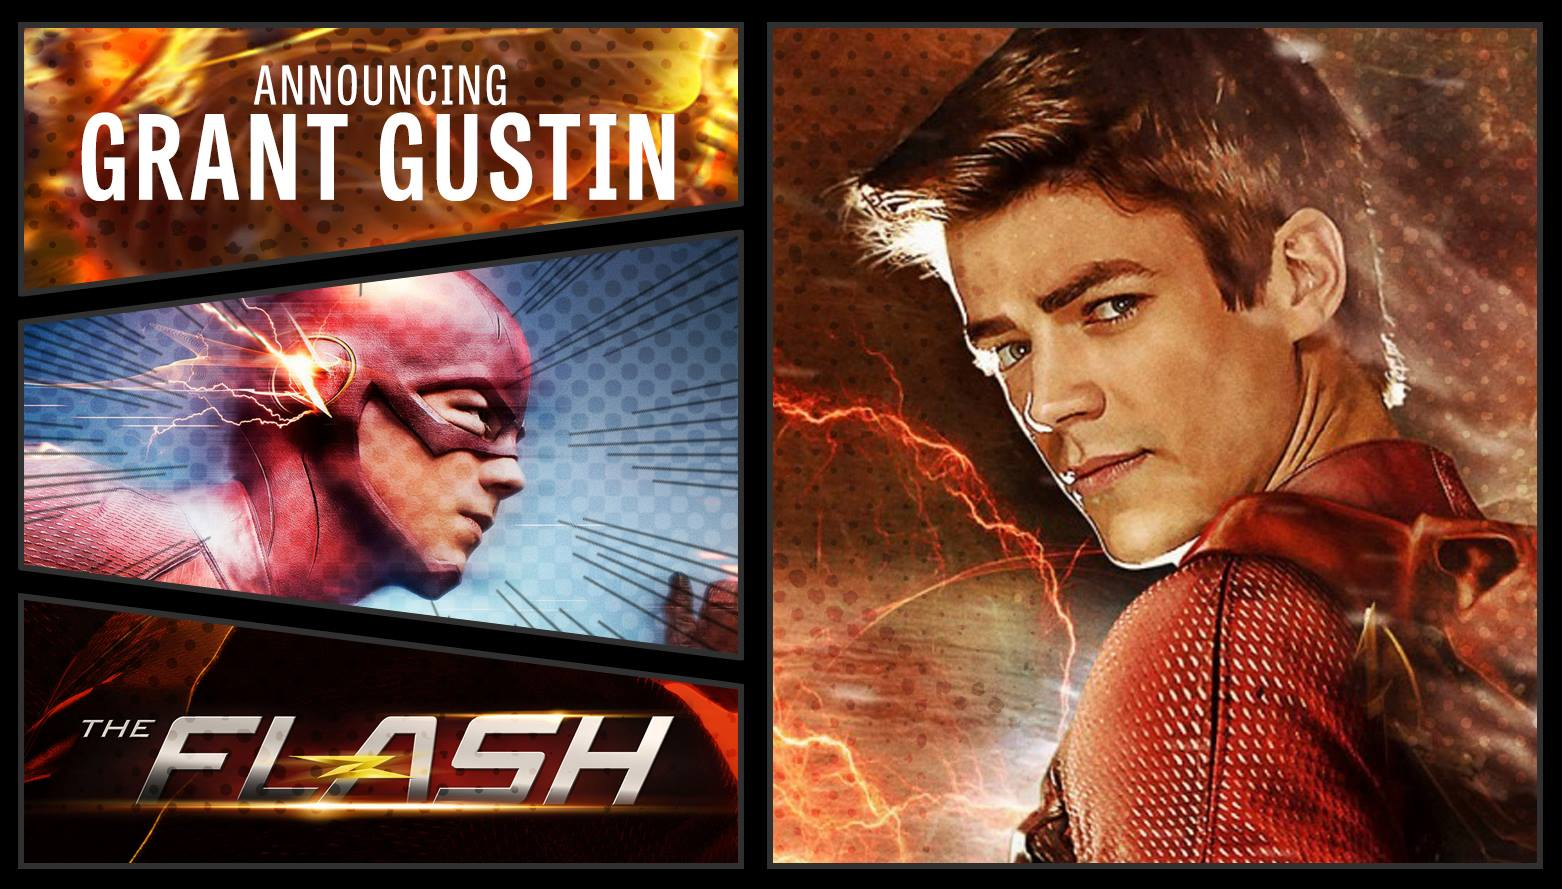 Grant gustin makes first ever comic con appearance at svcc 2017 grant gustin makes first ever comic con appearance at svcc 2017 convention scene m4hsunfo Image collections